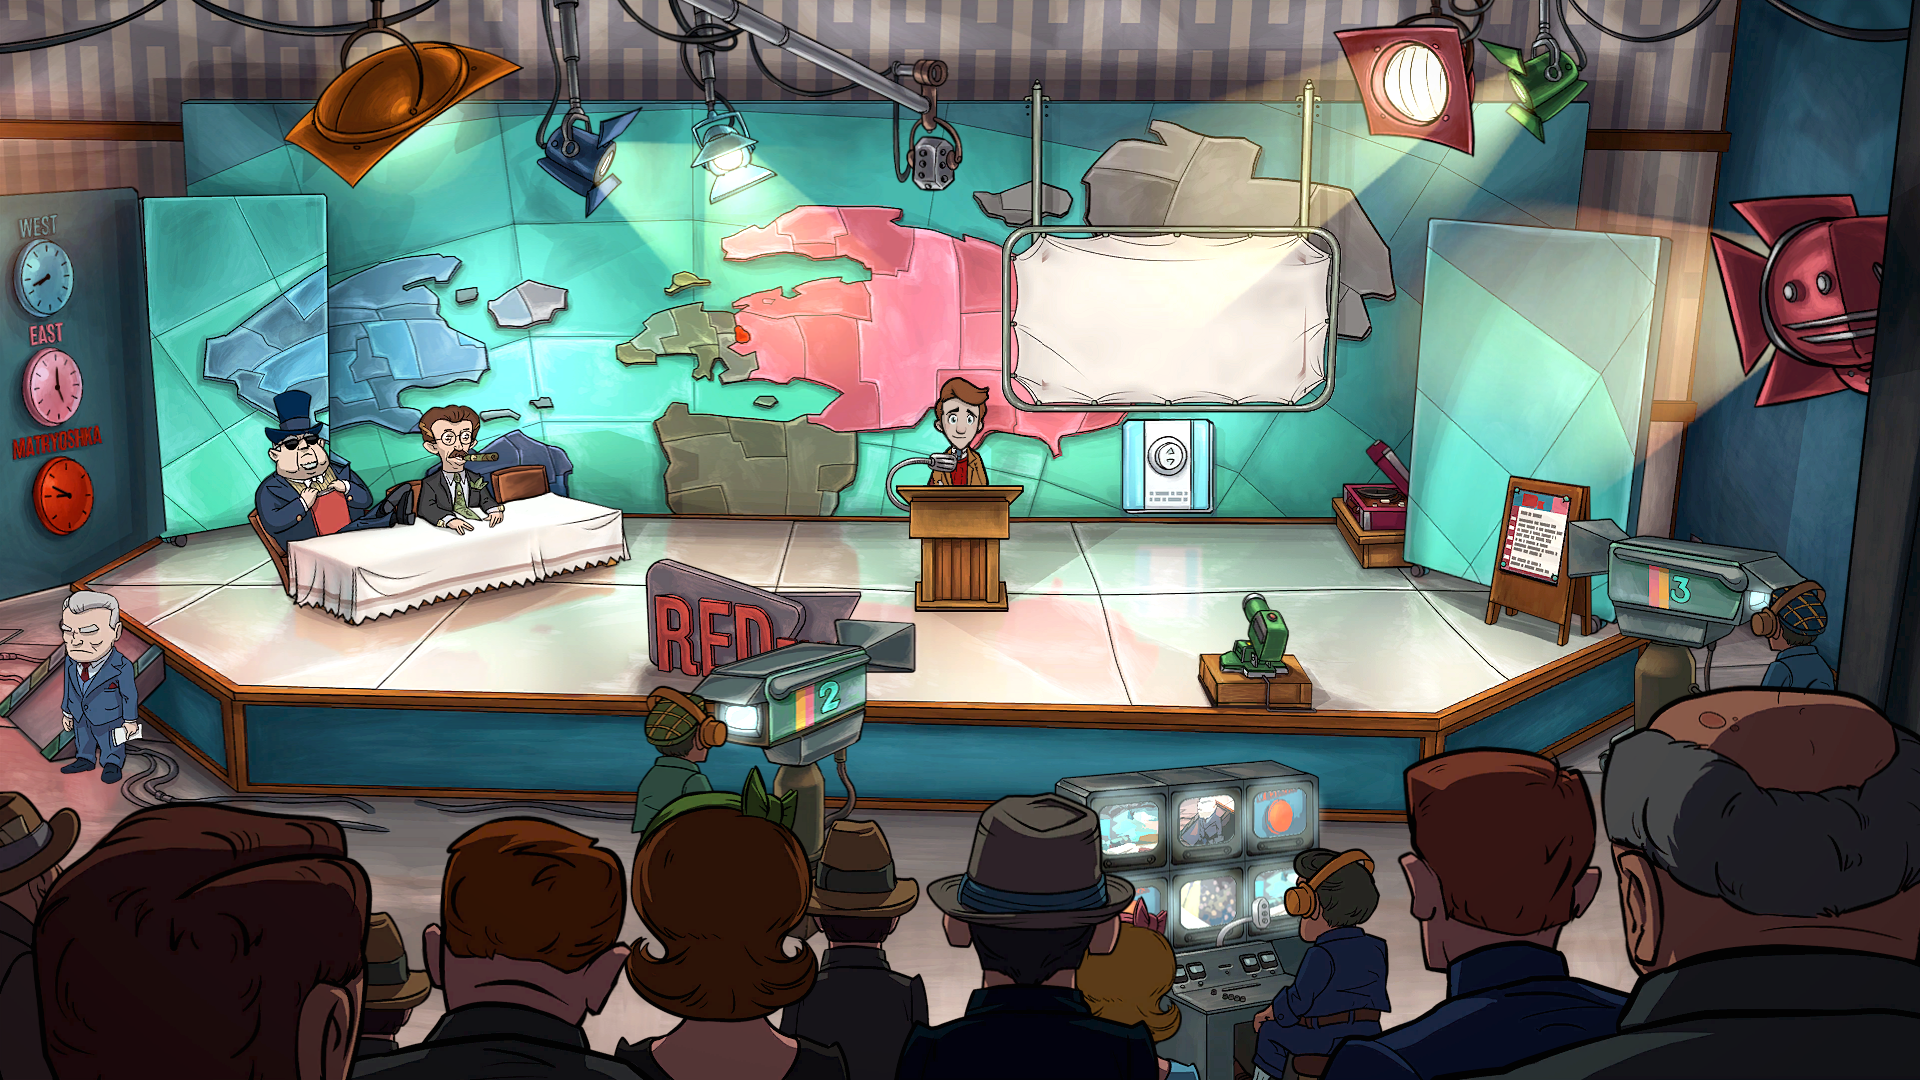 Screenshot of Evan in TV Studio in front of distorted world map